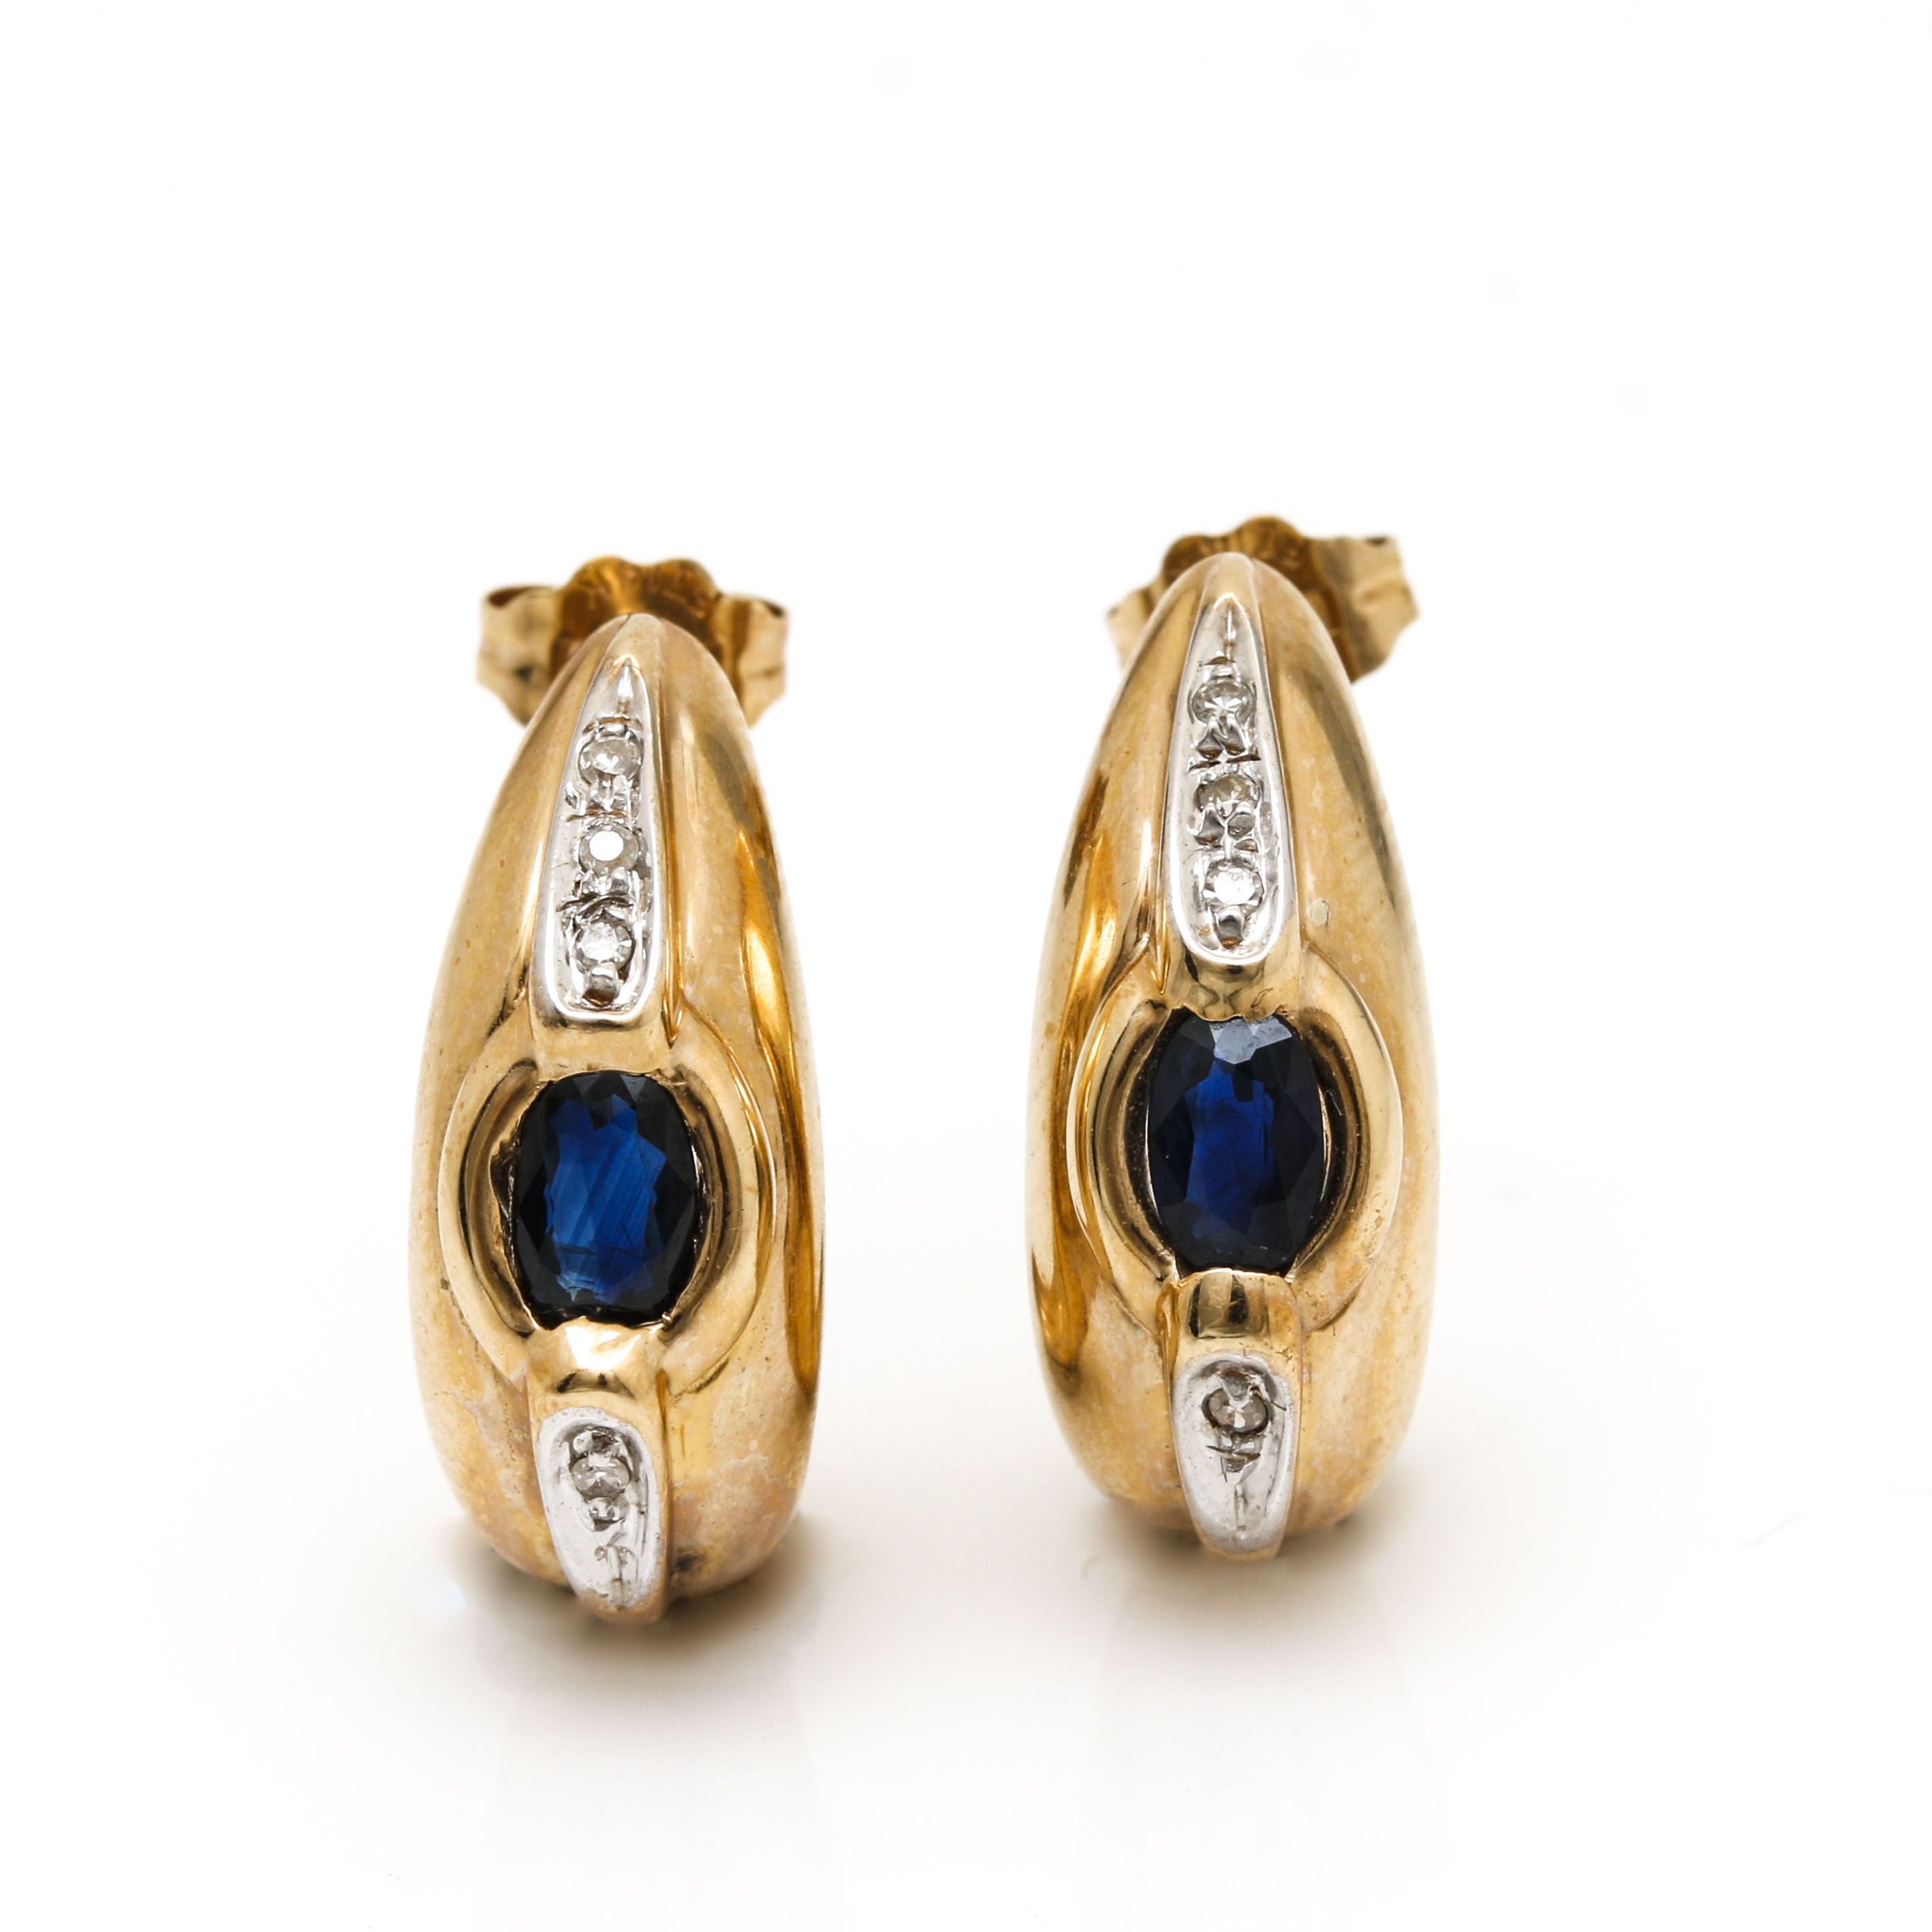 14K Yellow Gold Sapphire and Diamond Half Hoop Earrings with White Gold Accents